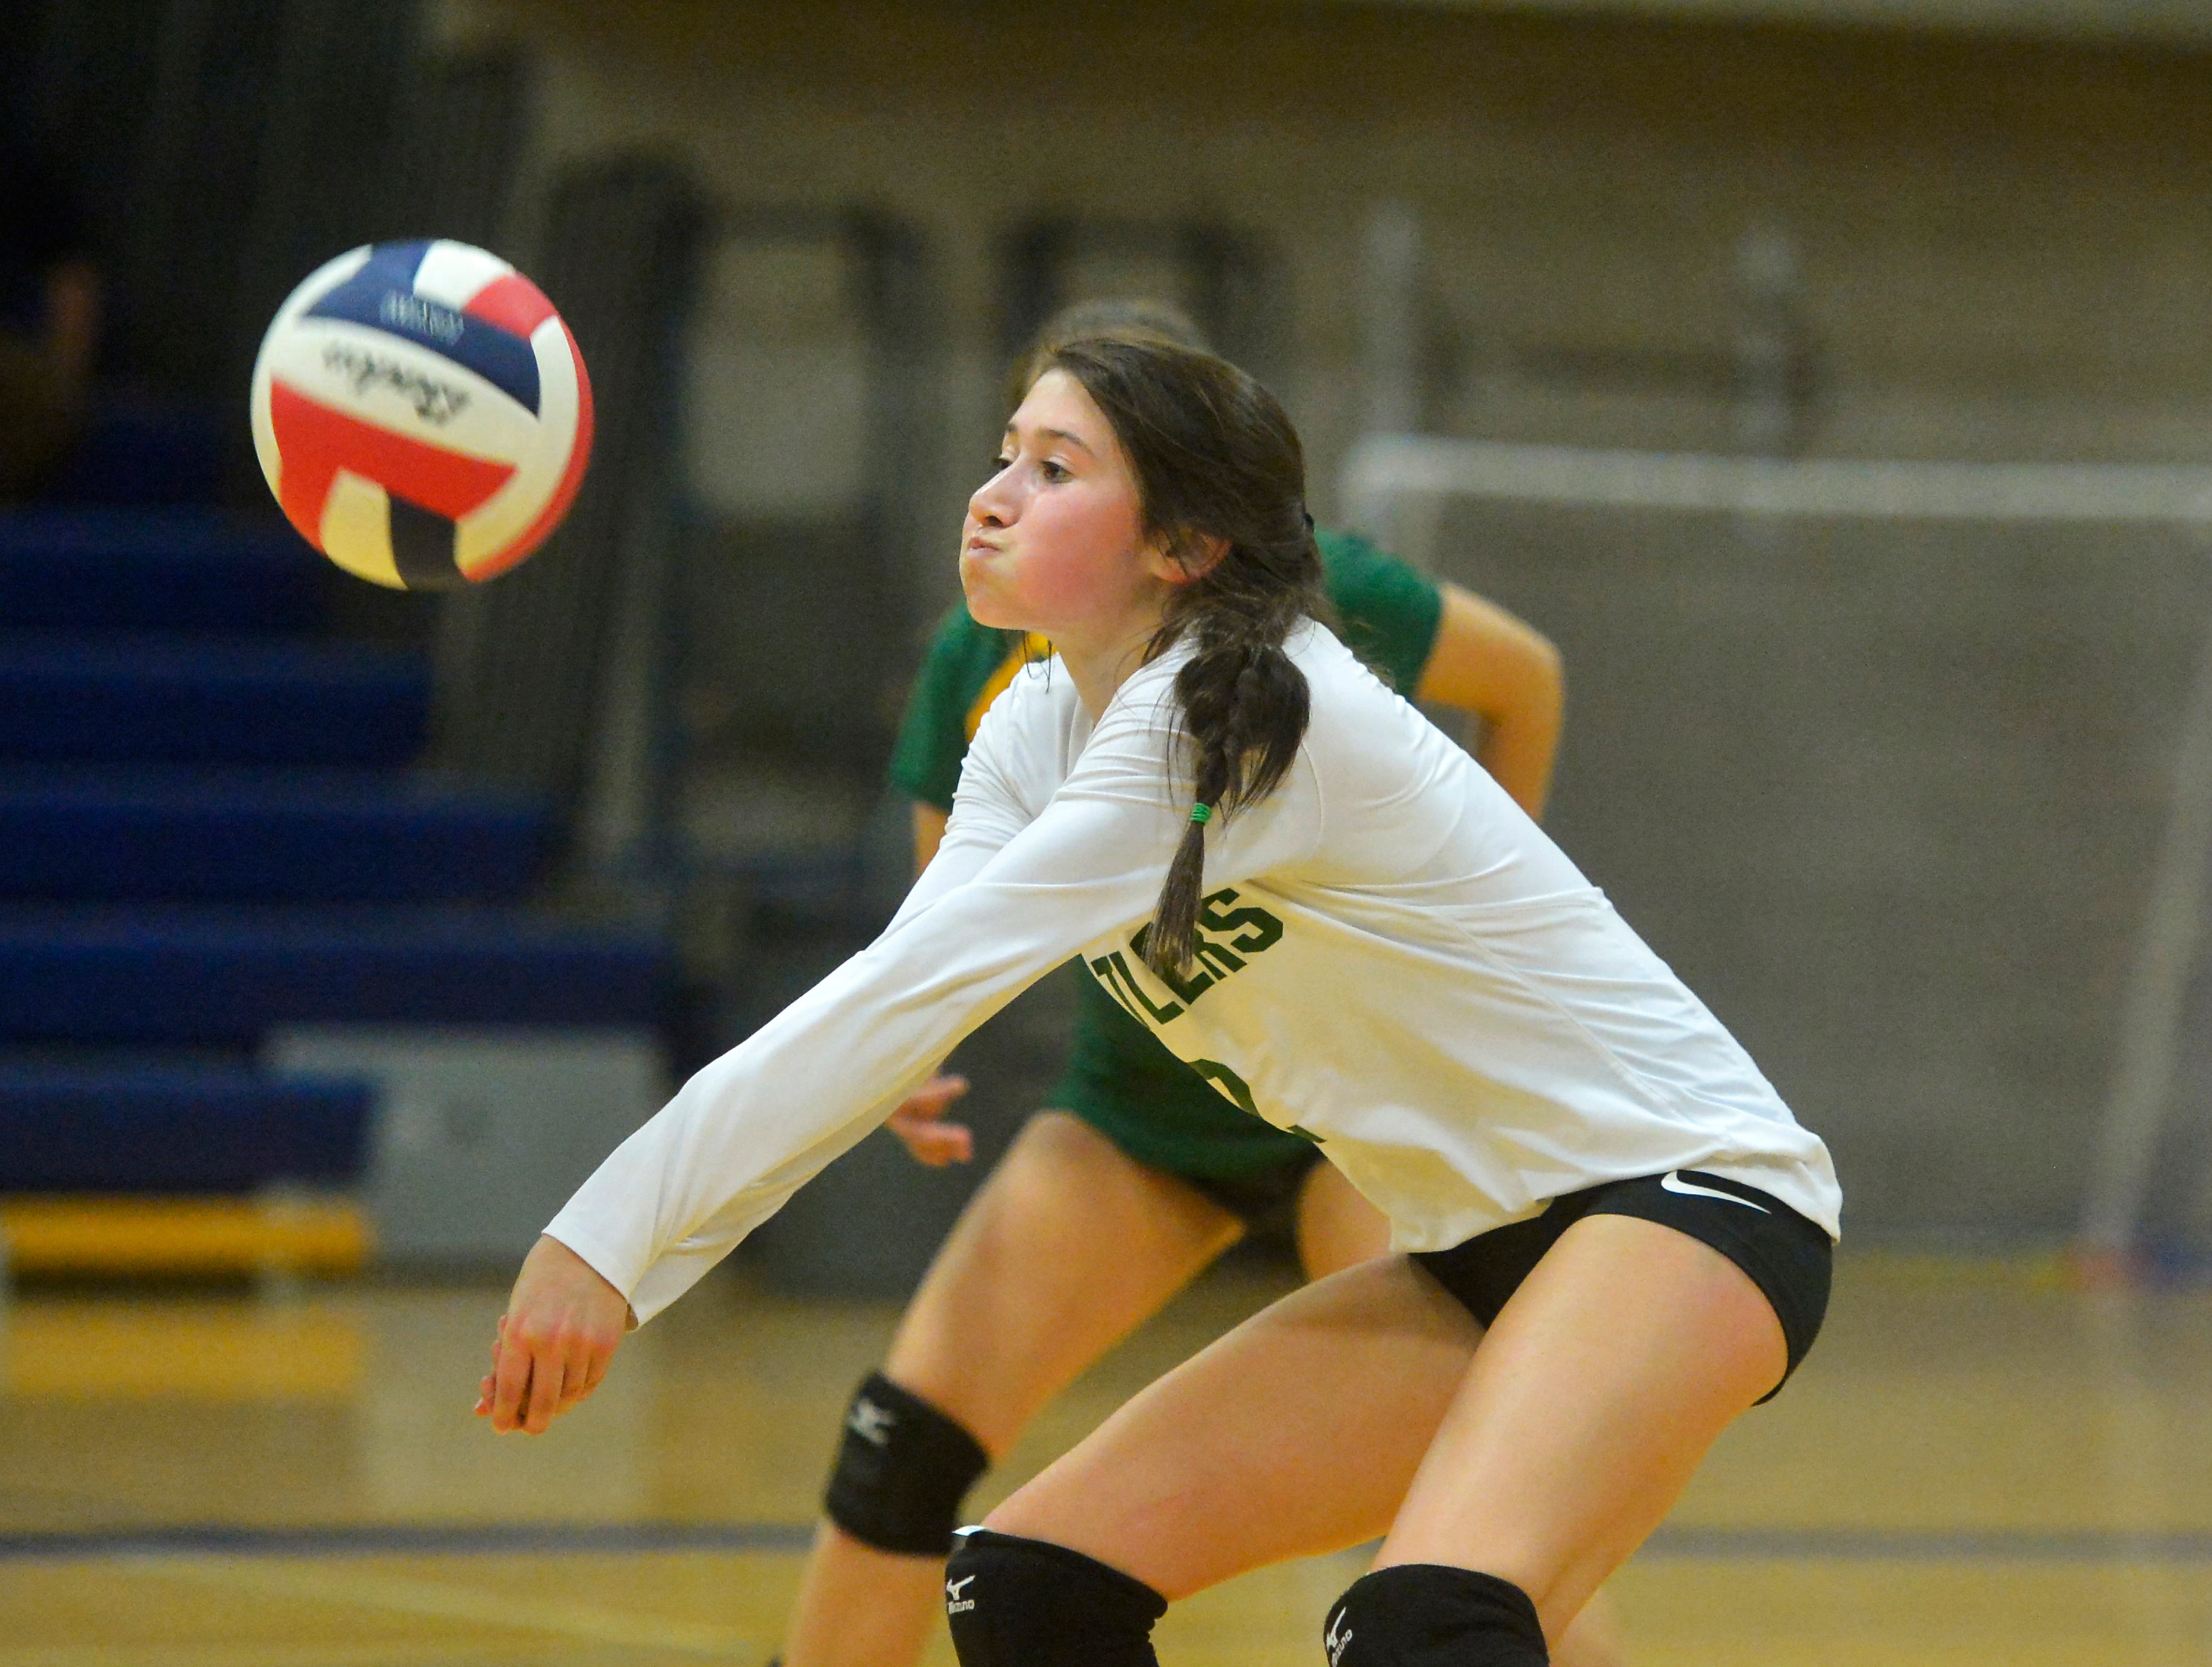 CMR's Lauren Lindseth makes a pass during the crosstown volleyball match in the Swarthout Fieldhouse, Tuesday.